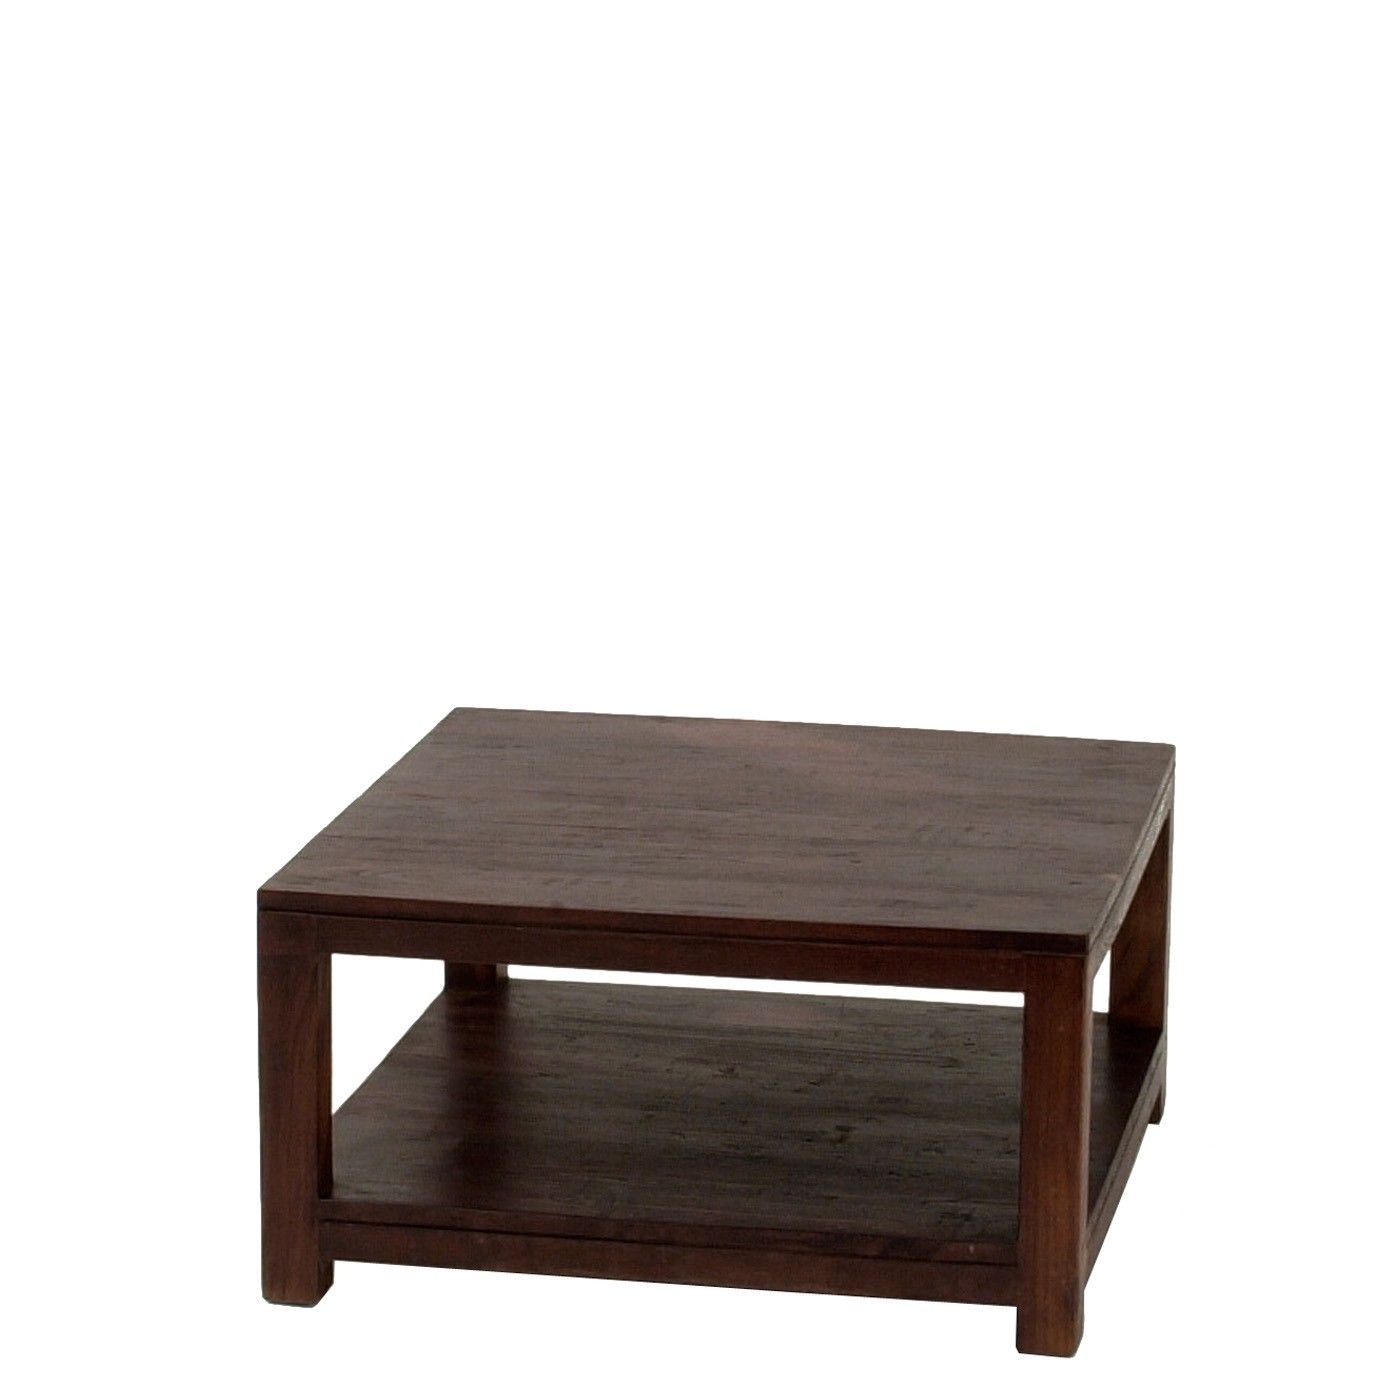 Cube Coffee Table Tables Living Raft Furniture London